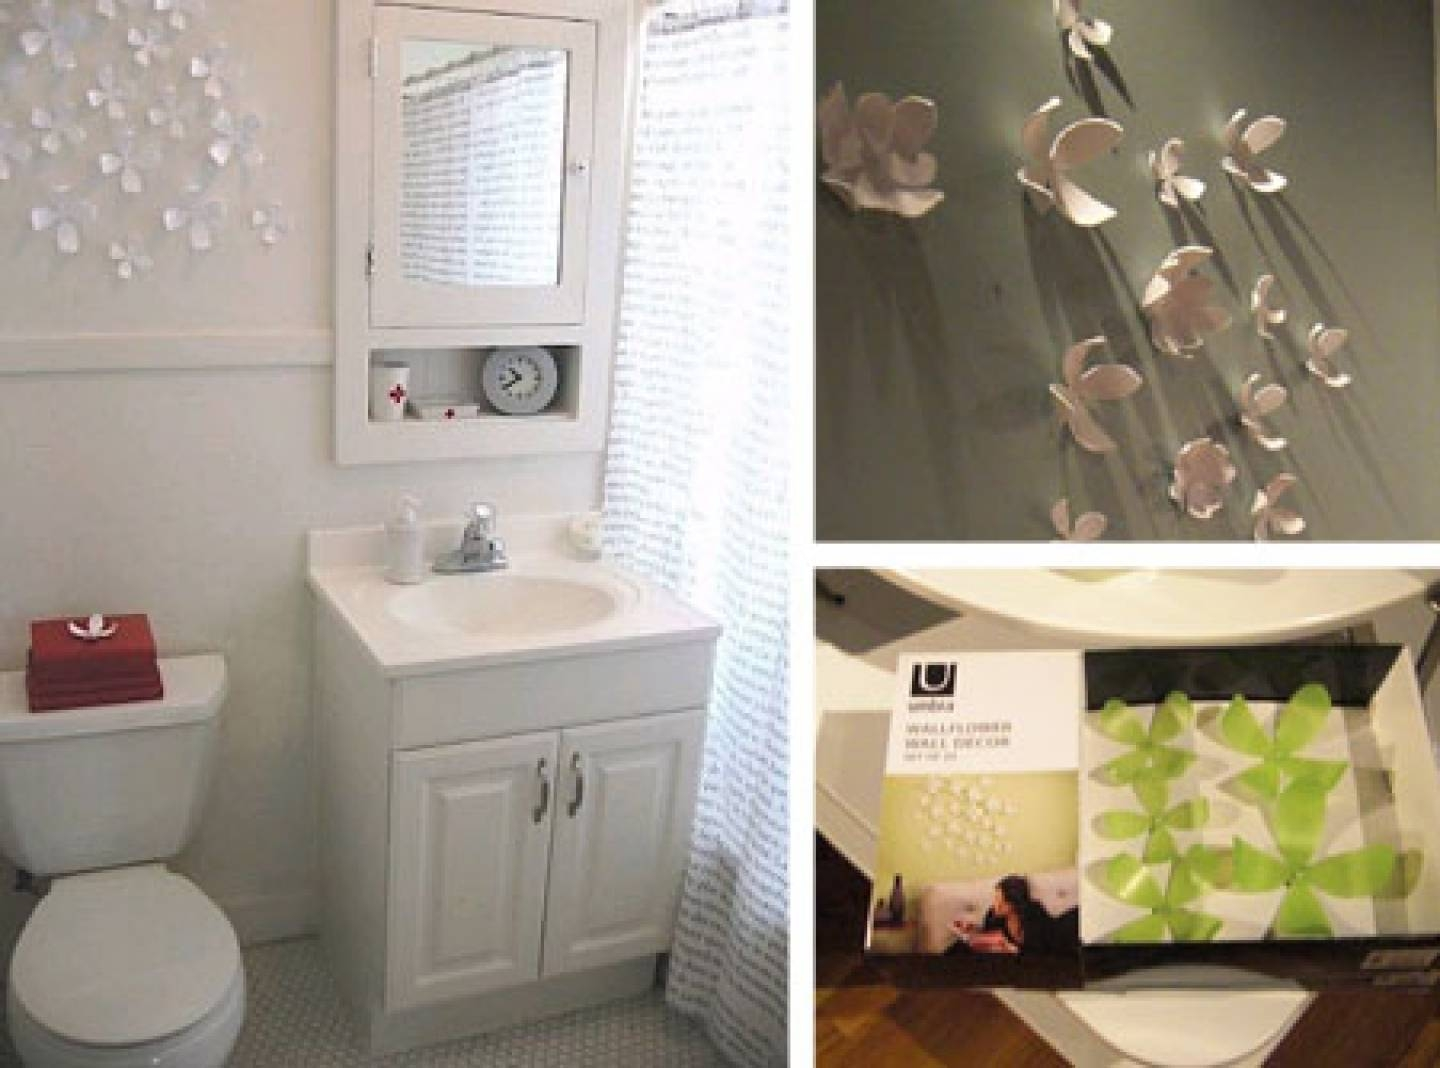 Download Bathroom Wall Decorations | Gen4Congress For Most Up To Date Bathroom Wall Hangings (View 19 of 20)